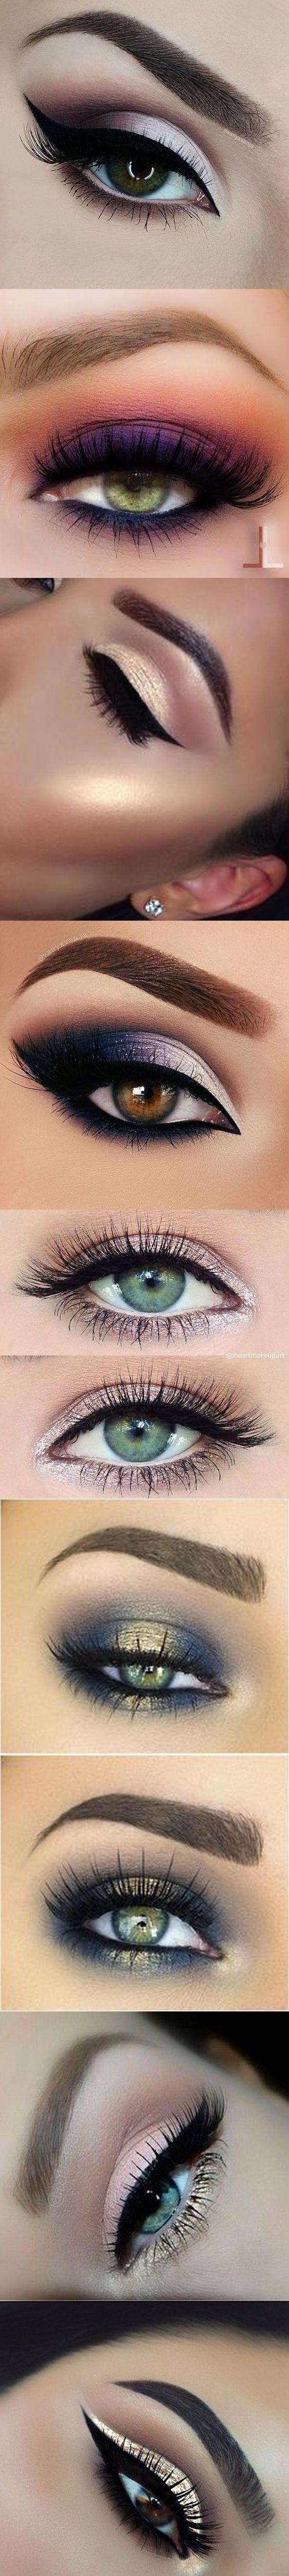 Inspiring eye looks. Which ones will you try?